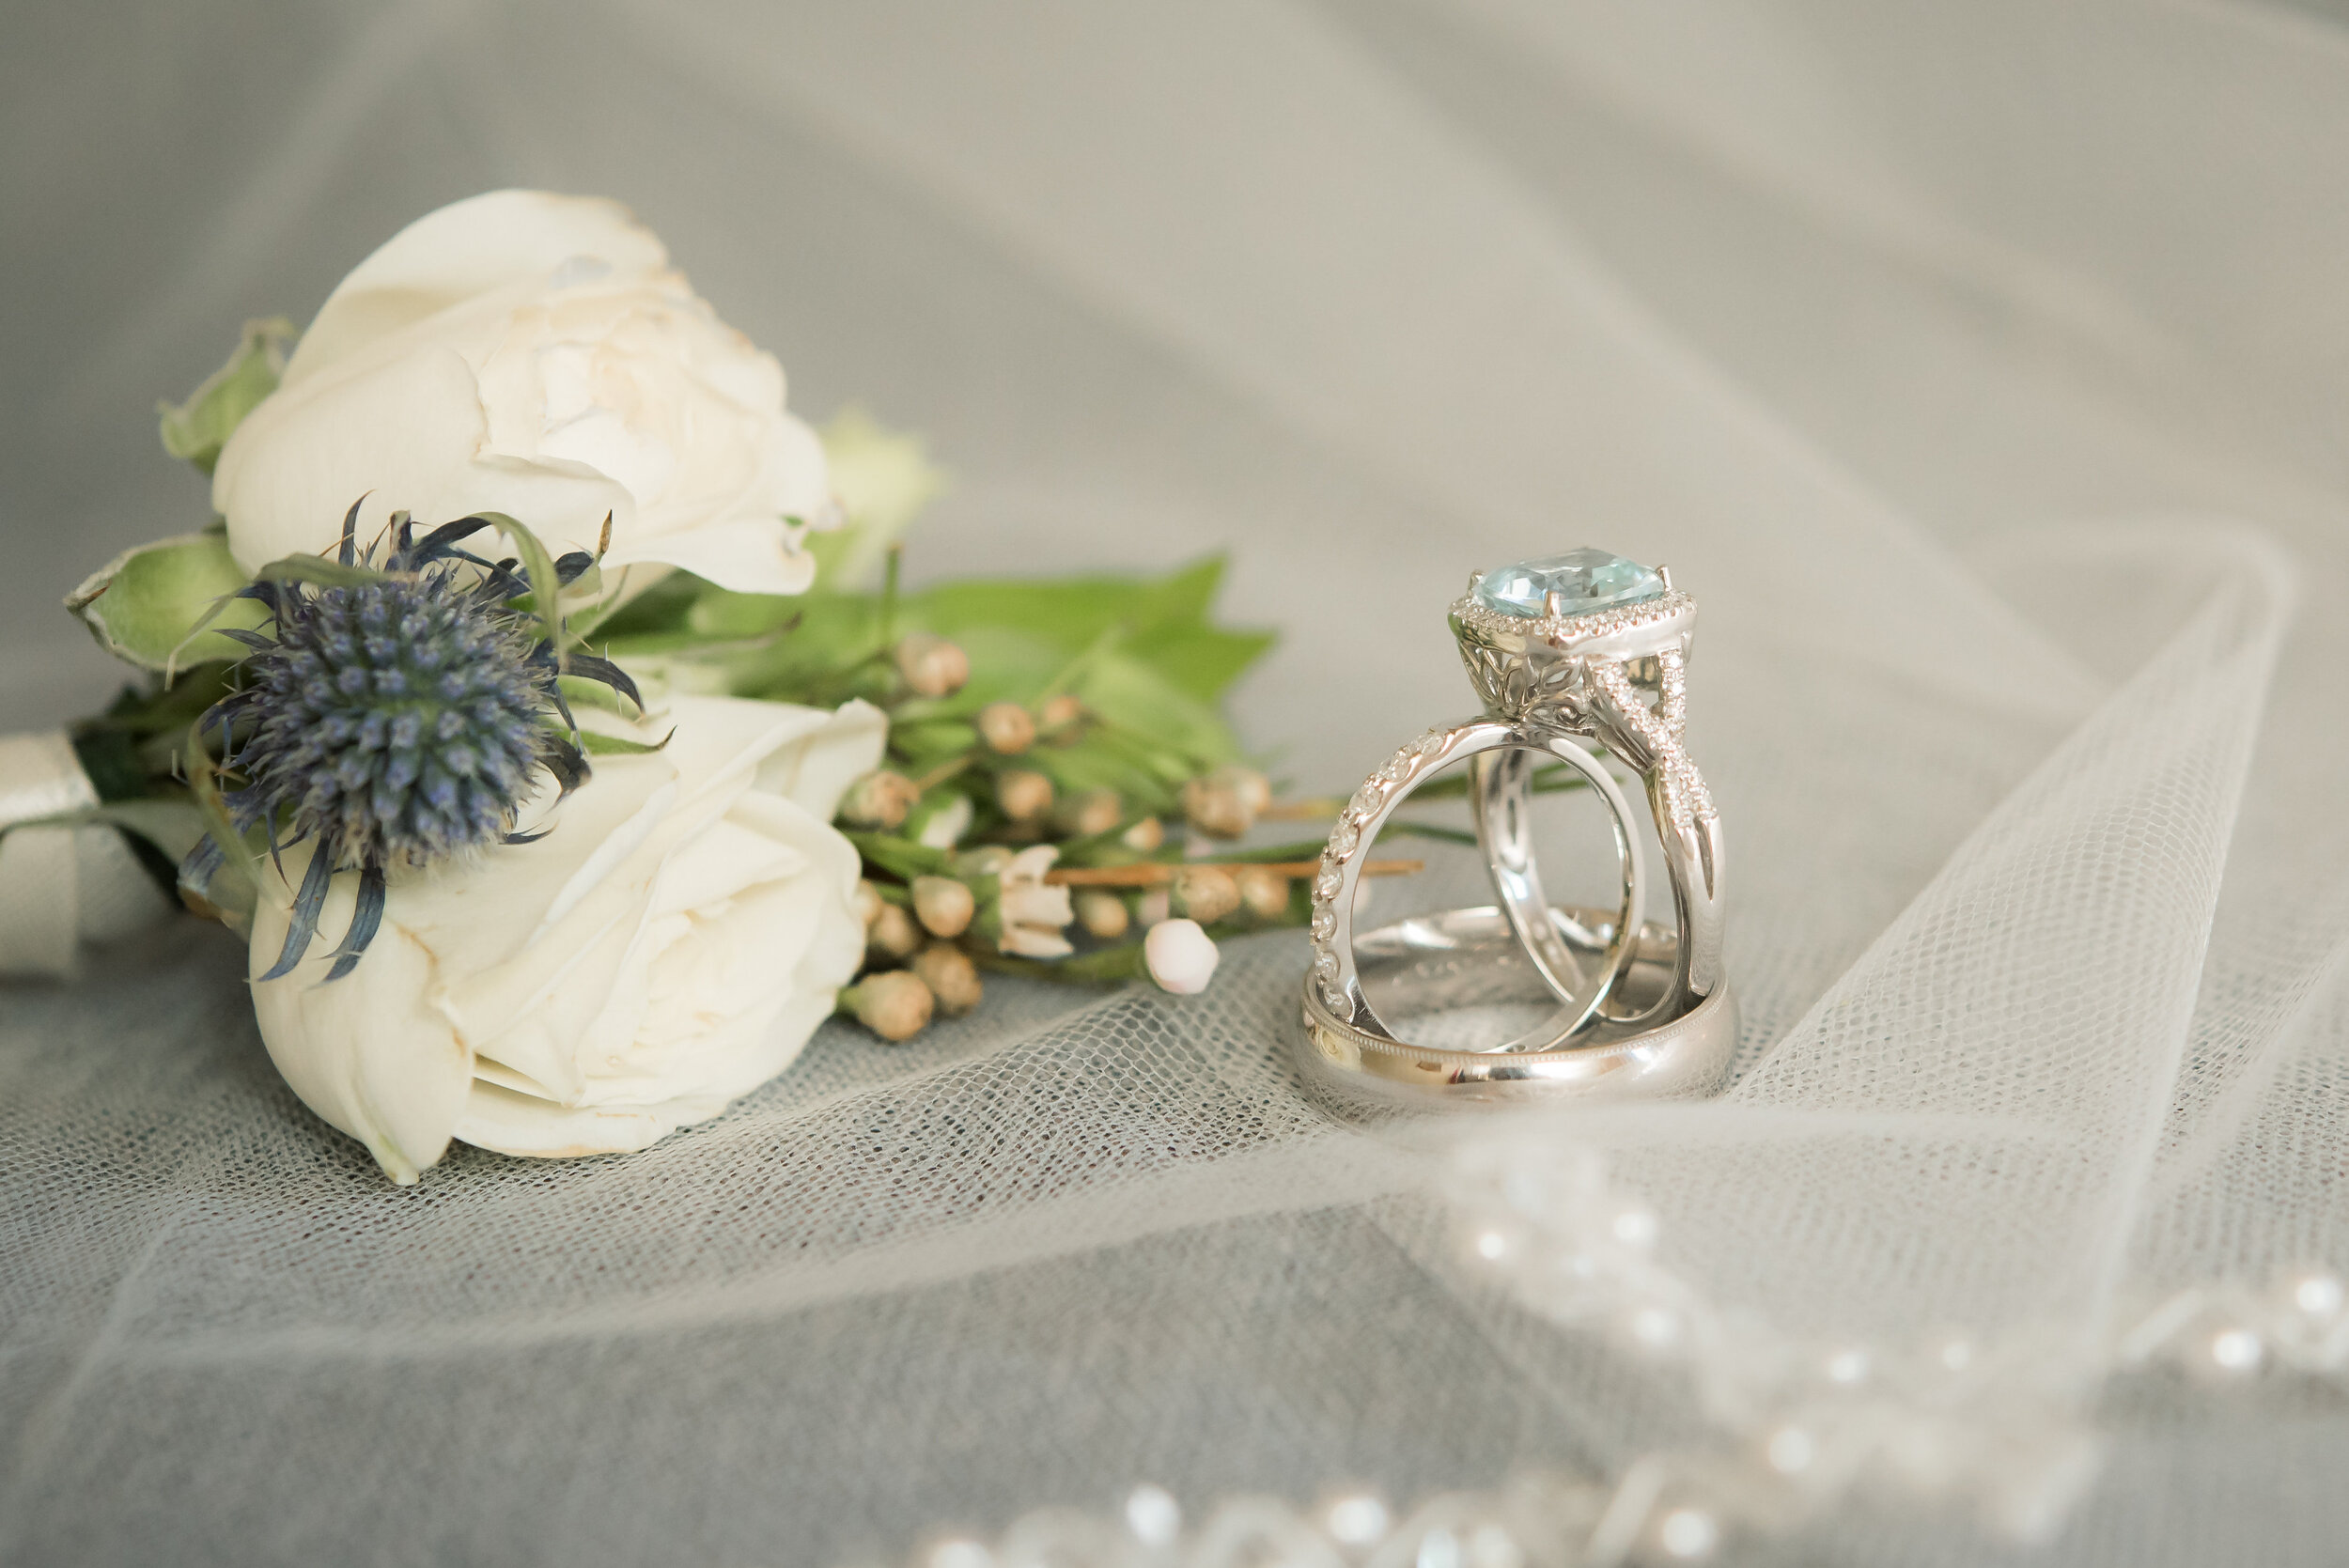 PHOTOGRAPHER: Adrea Thomas Photography -- www.adreathomas.com -- IG: adreathomasphoto  EVENT DESIGN & FLOWERS: Your Best Guest -- Hannah Guest -- www.yourbestguest.com -- IG & FB: @yourbestguest  Rings by Guven's Fine Jewelry